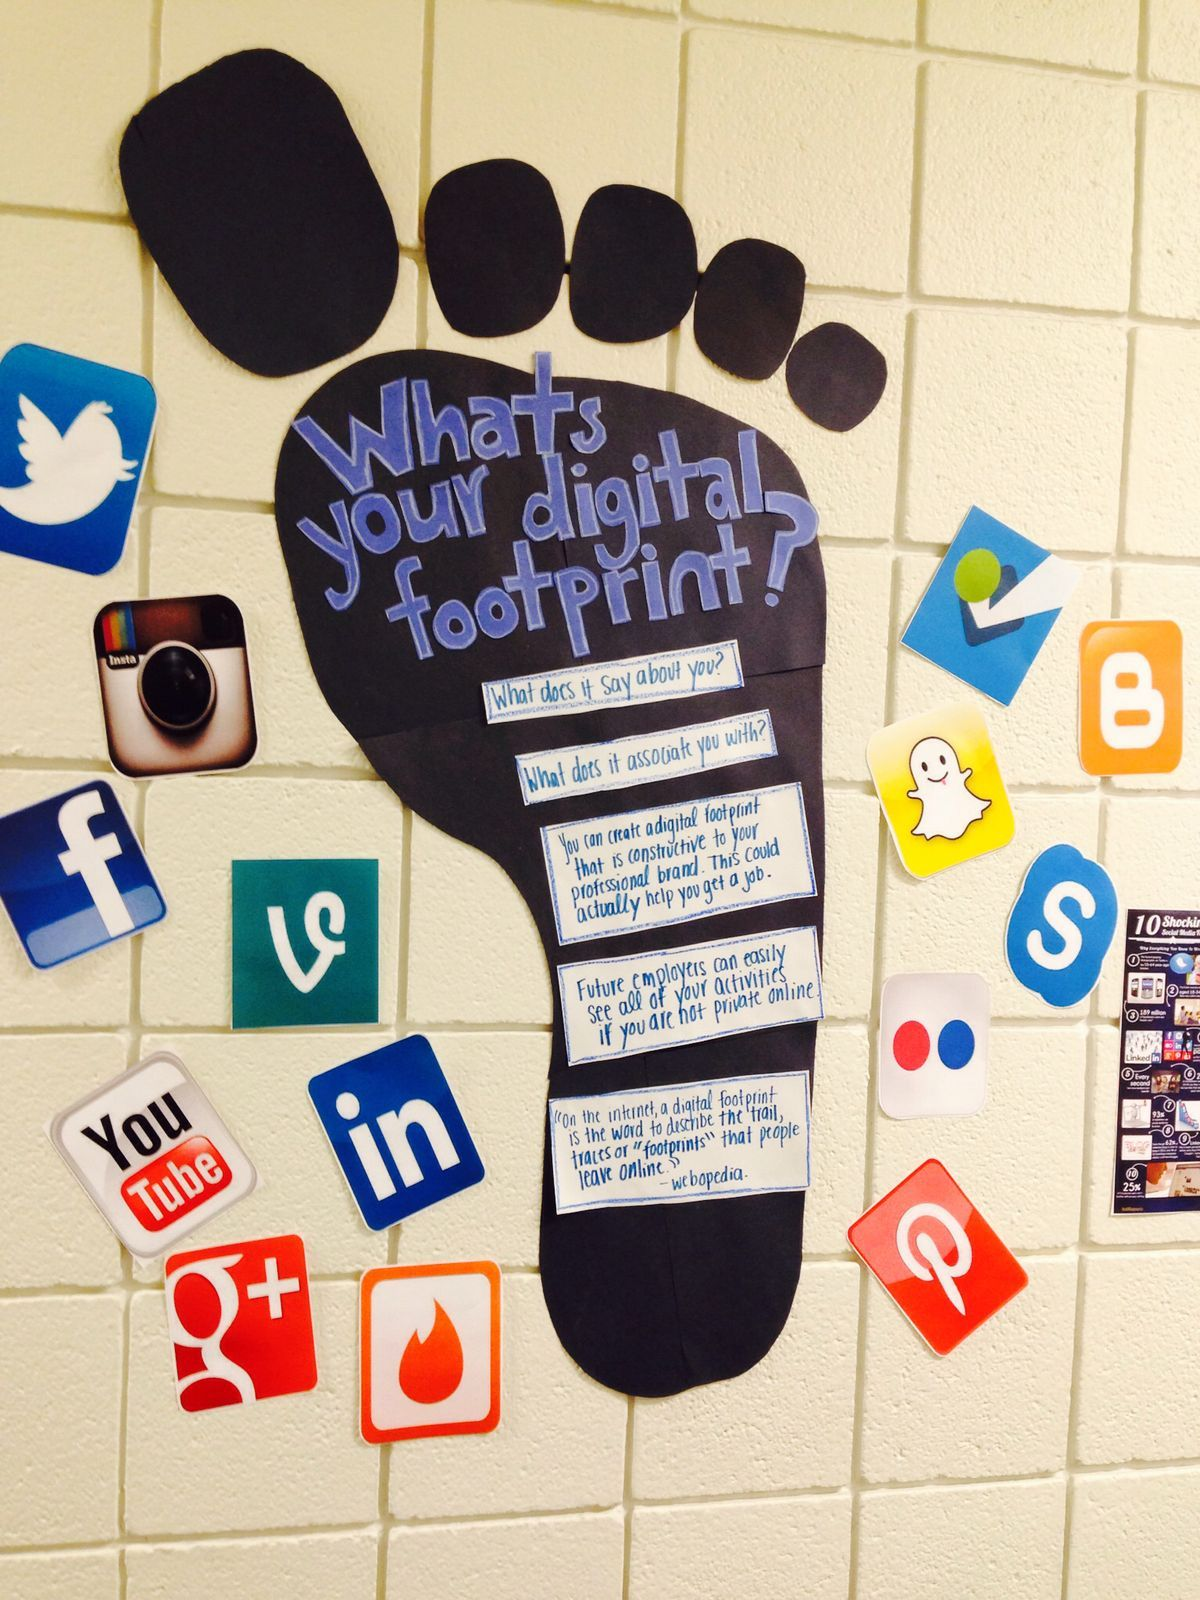 Digital Footprint: THINK | Digital footprint, Computer lab ... |Surgical Technology Bulletin Board Ideas